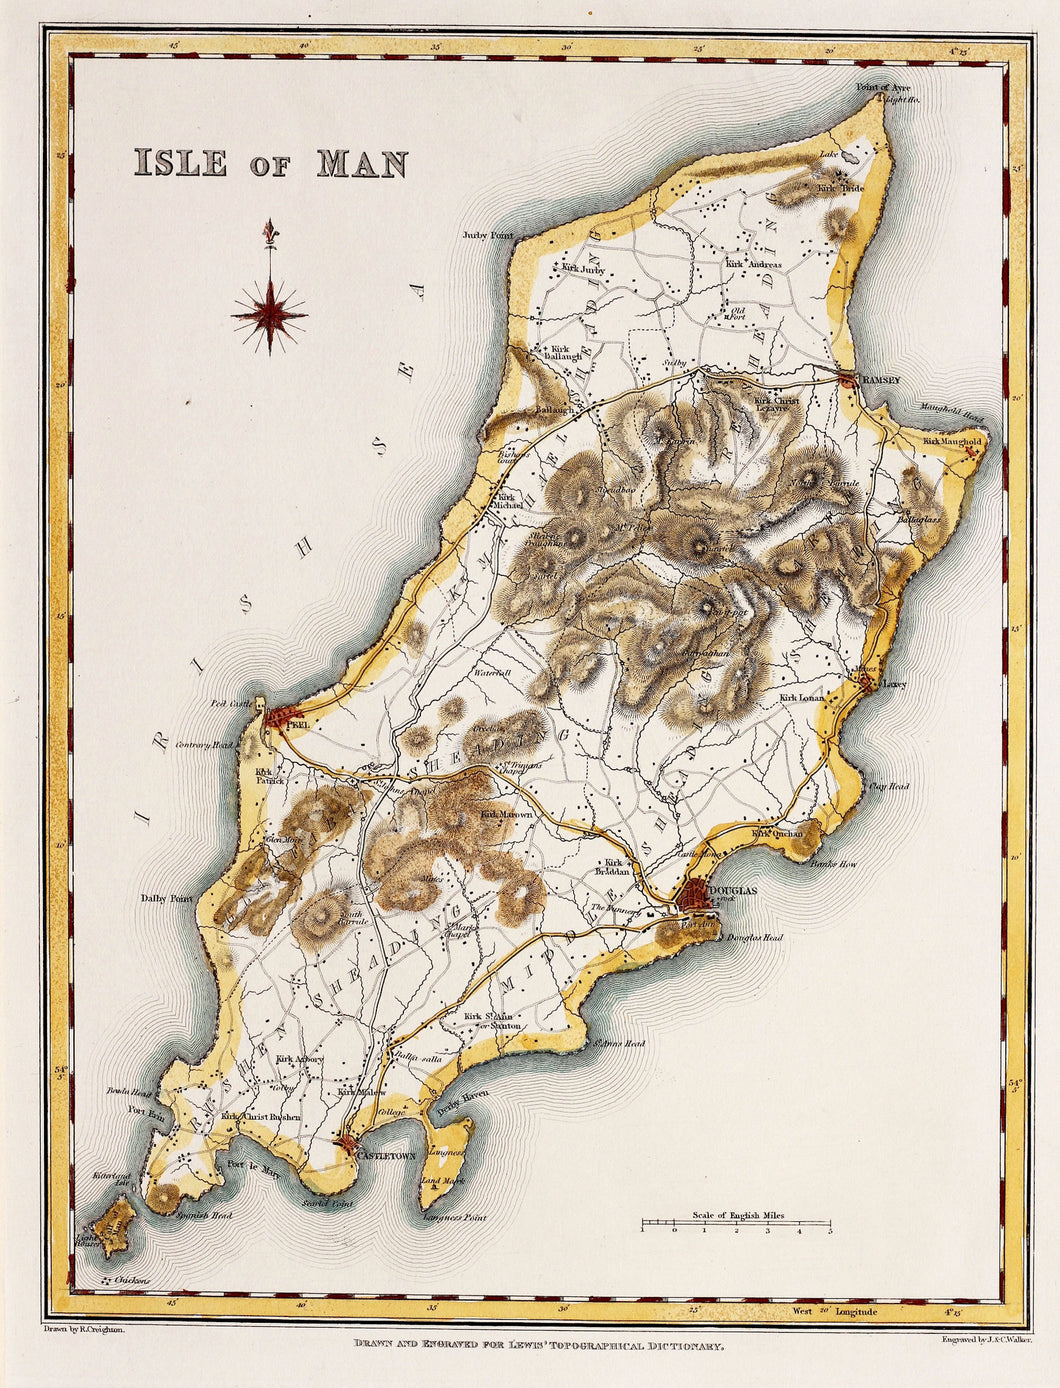 Isle of Man - Antique Map by J&C Walker circa 1831